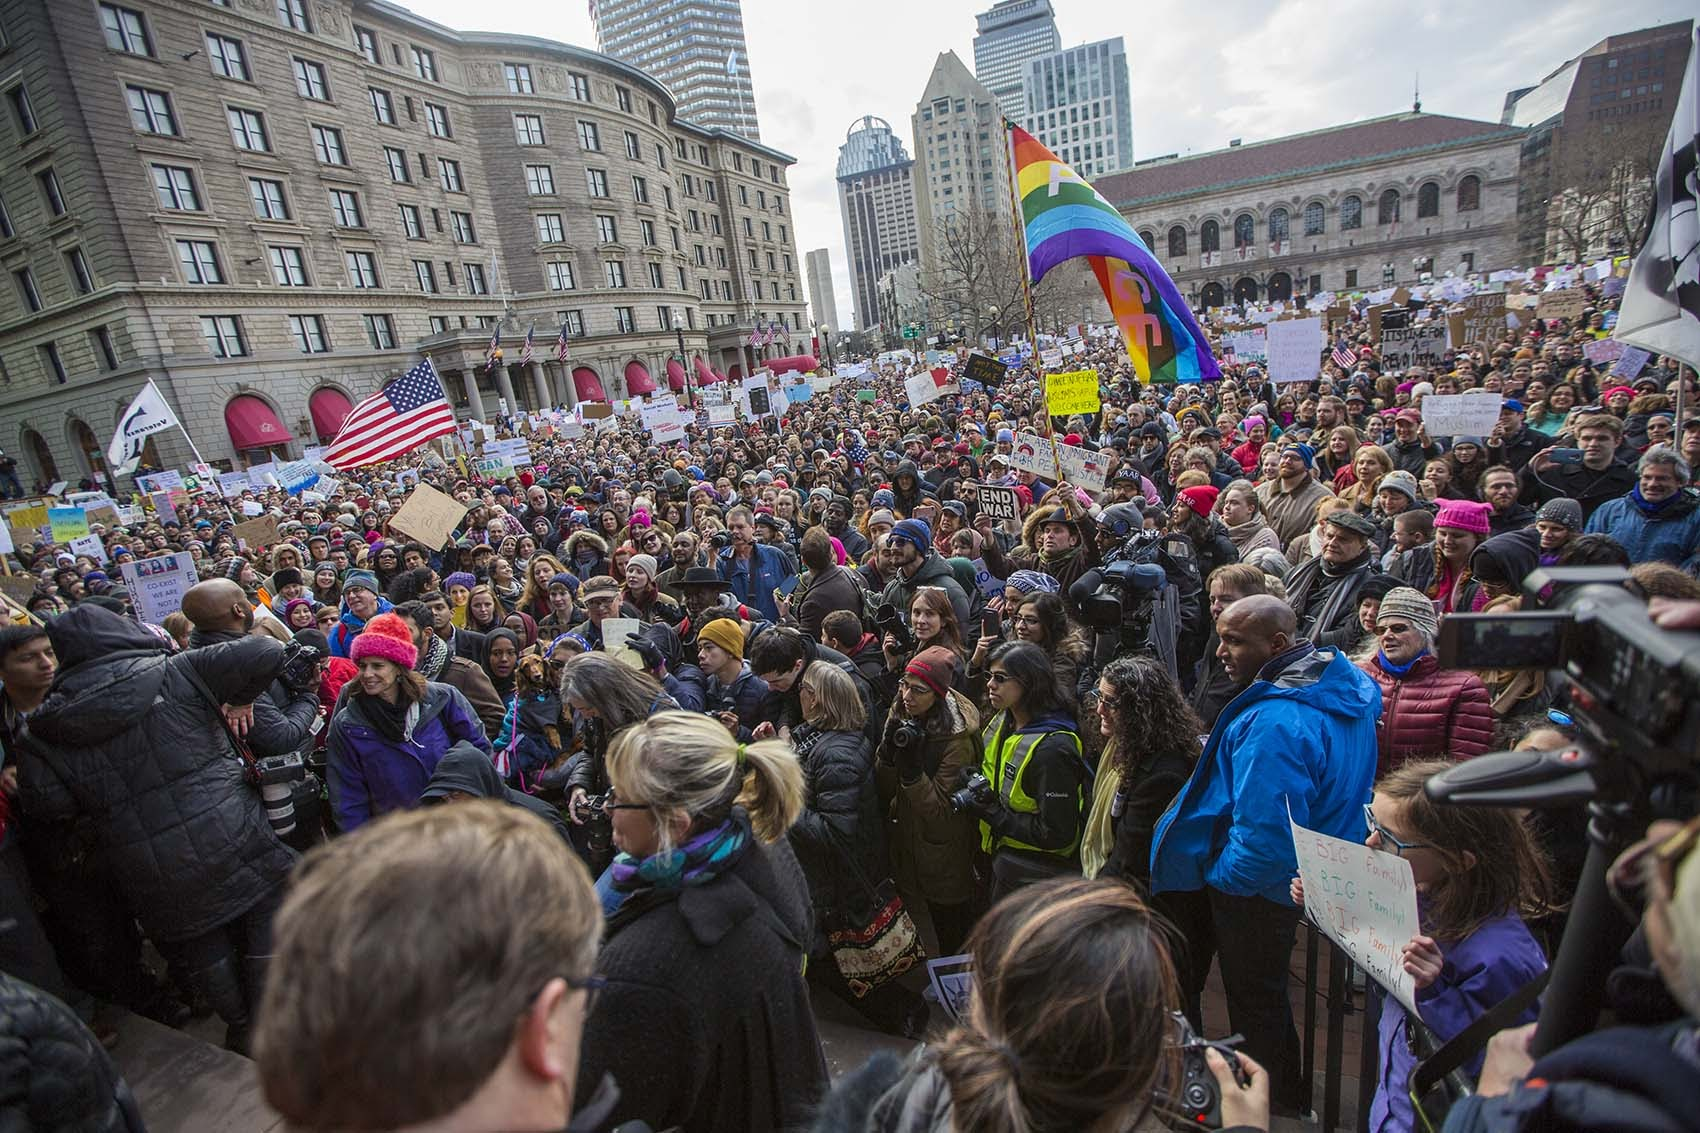 Copley Square was jammed with people during the Sunday's protest in opposition to President Trump's executive order on immigration. Carlos Arredondo stood among the crowd, holding a rainbow peace flag. (Jesse Costa/WBUR)